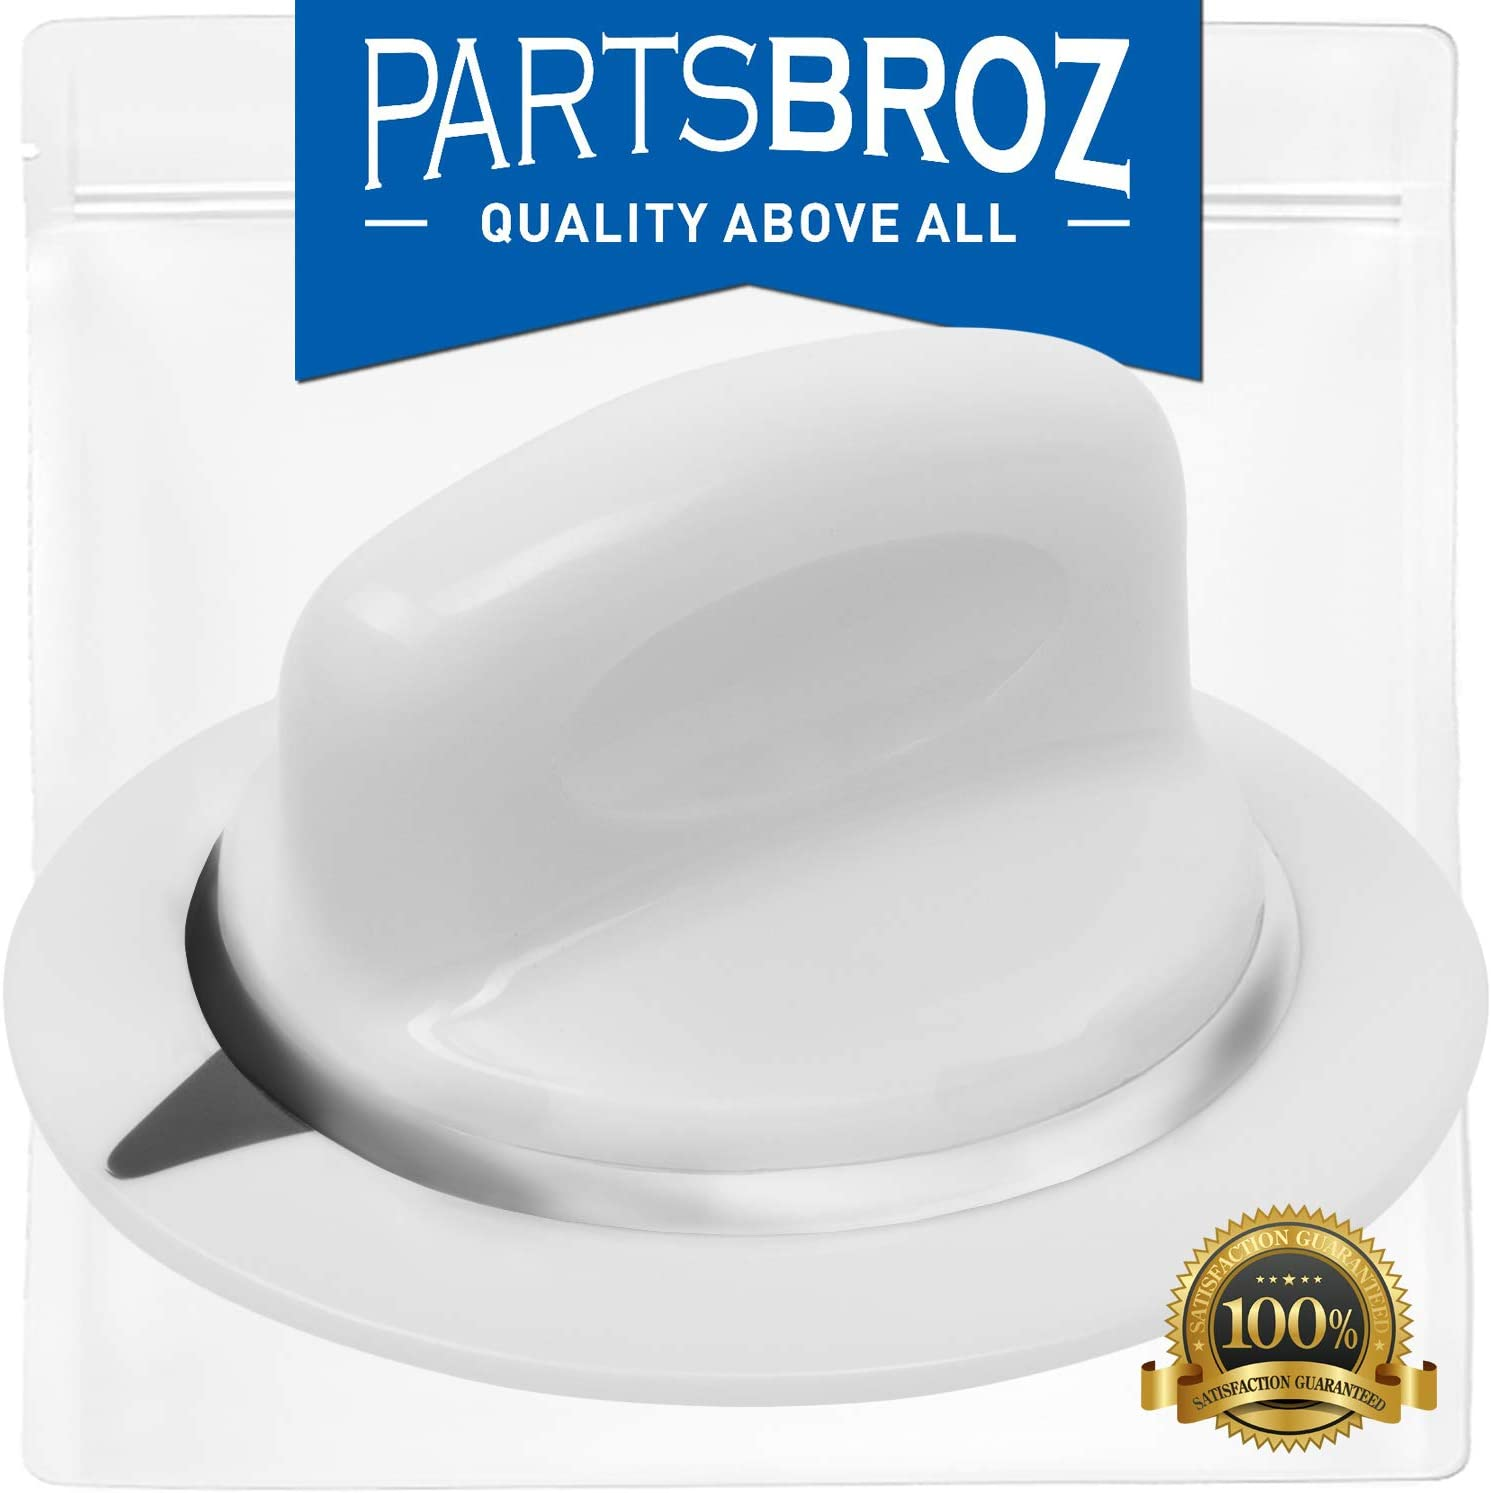 WE01X20374 Timer Knob for GE Dryers by PartsBroz - Replaces Part Numbers AP5805160, WE1M856, 3276177, PS8769912, WE1M589